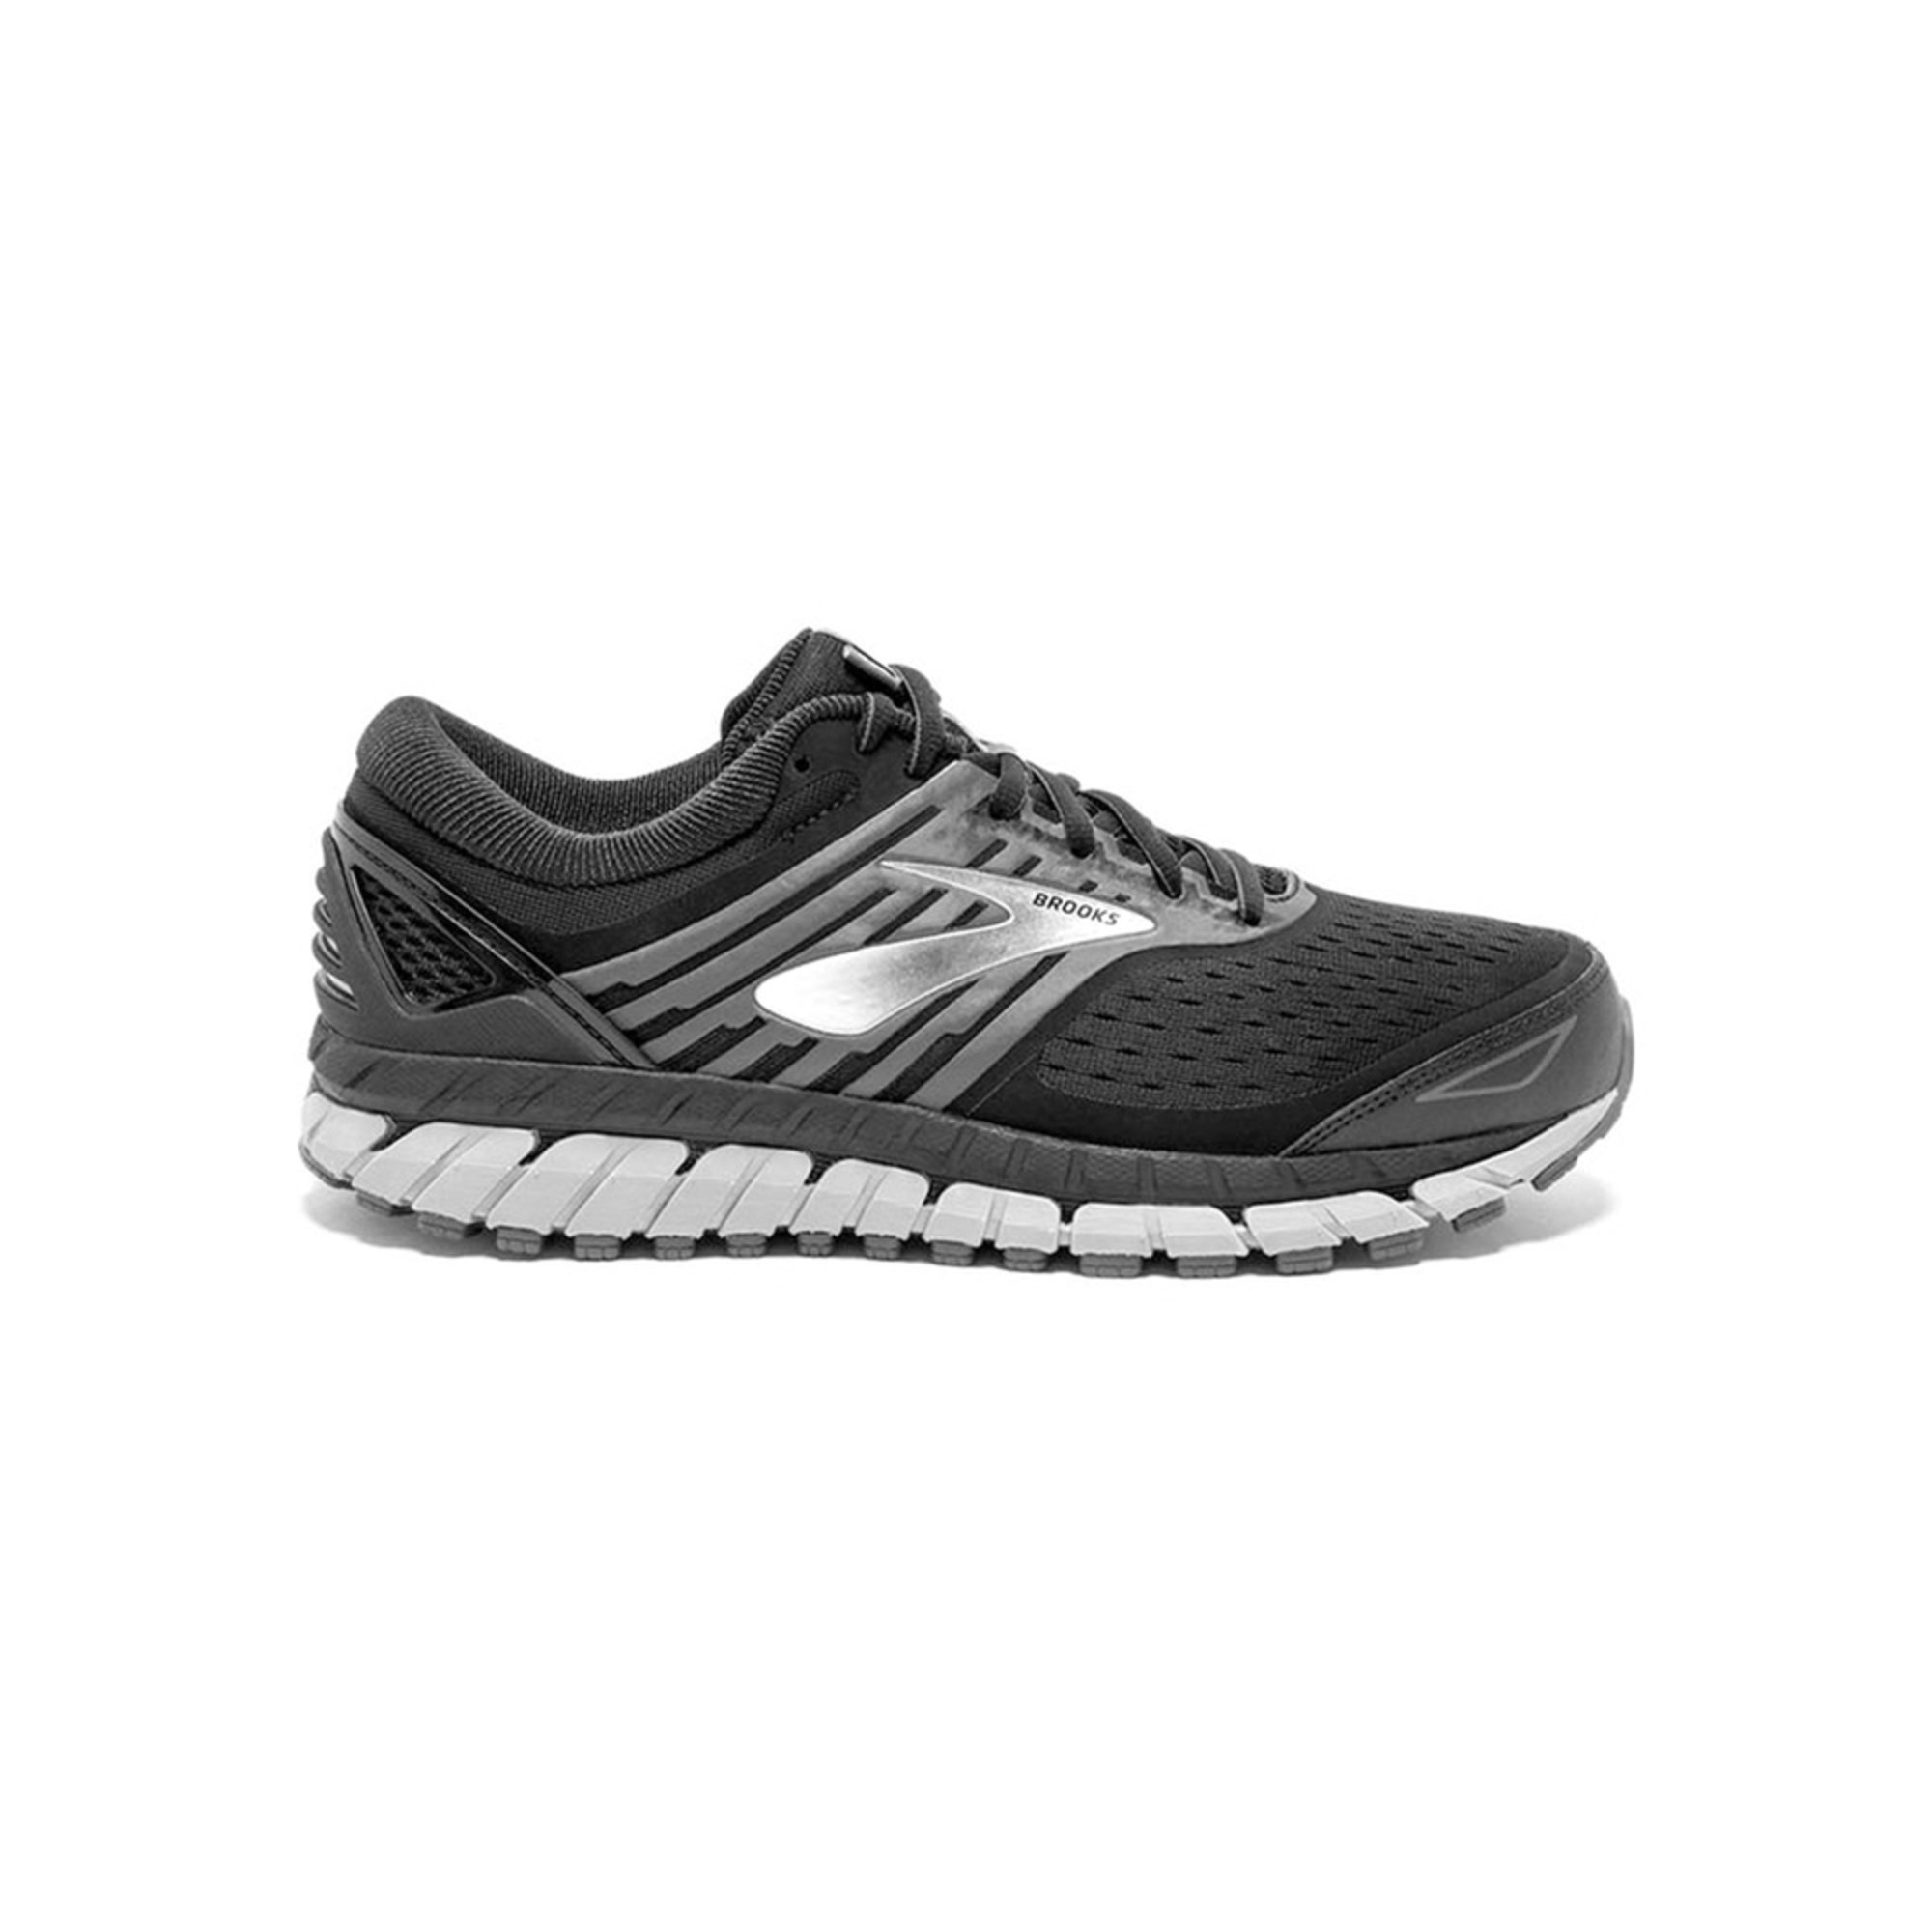 94509dc9cb7f8 Brooks Men s Beast 18 Running Shoe